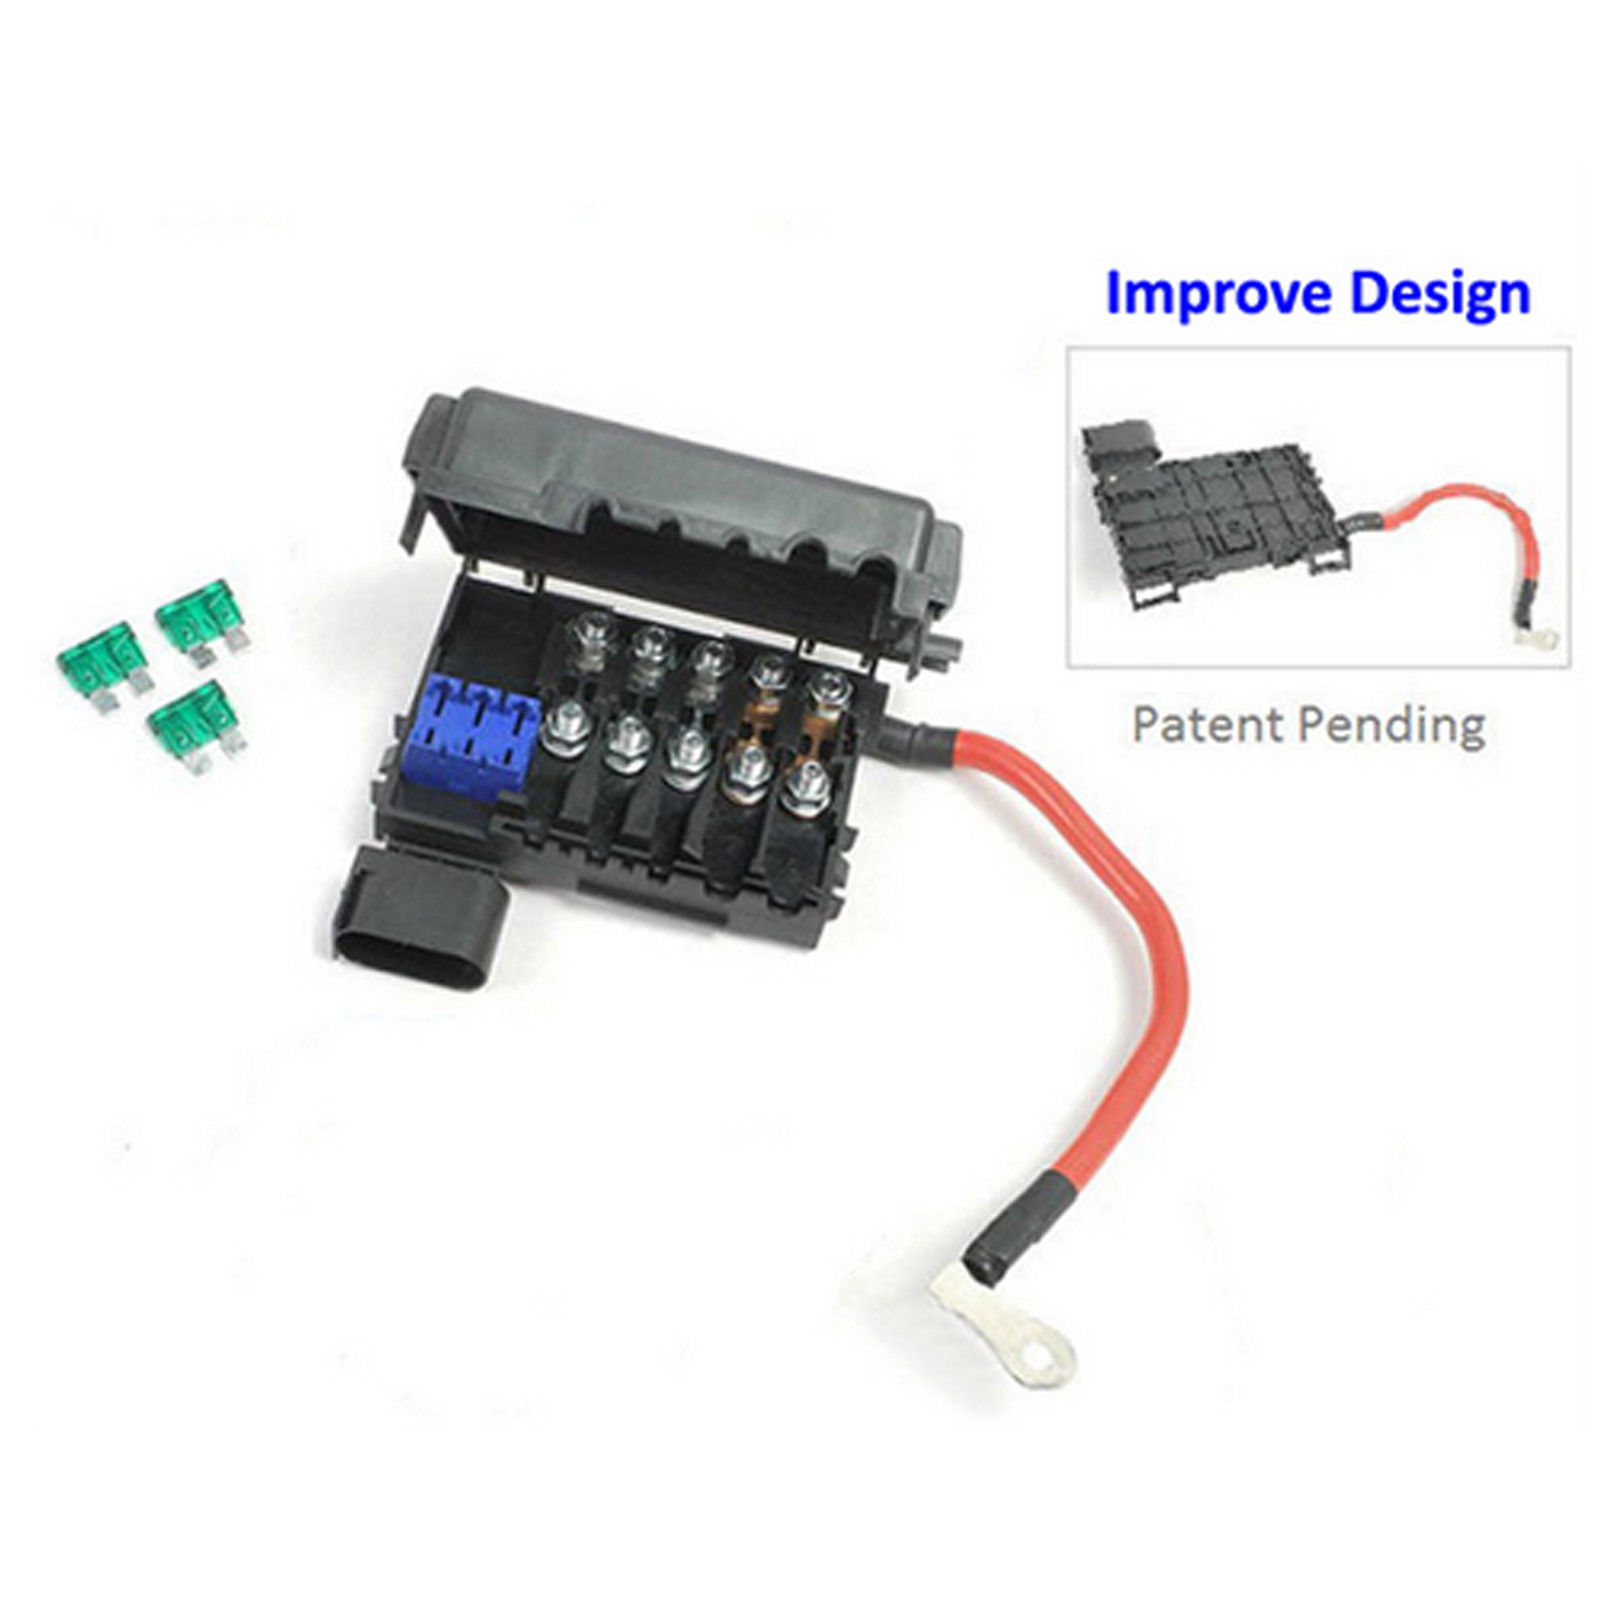 hight resolution of details about no more breaking for vw jetta golf beetle 1 8l 2 0l fuse box 1c0937617 nbc061c